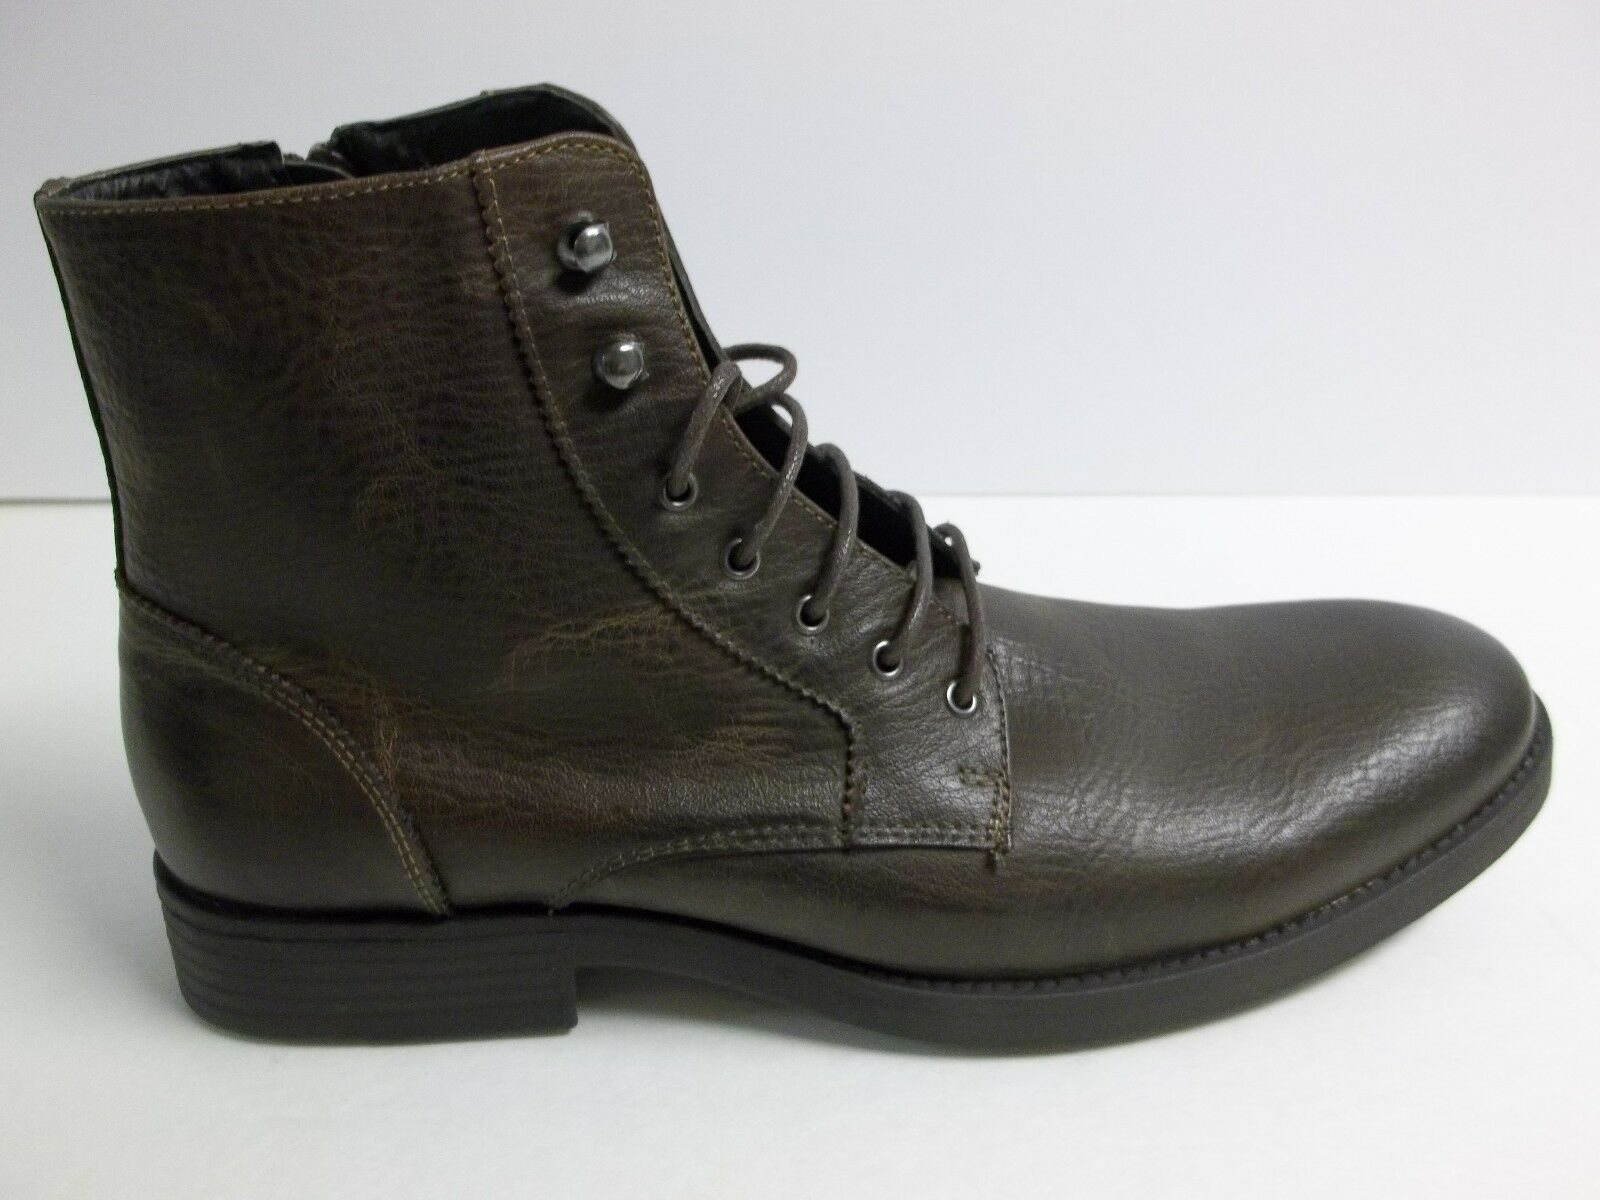 Robert Wayne Size 10.5 M Elbio Brown New Mens Ankle Boots Shoes Leather